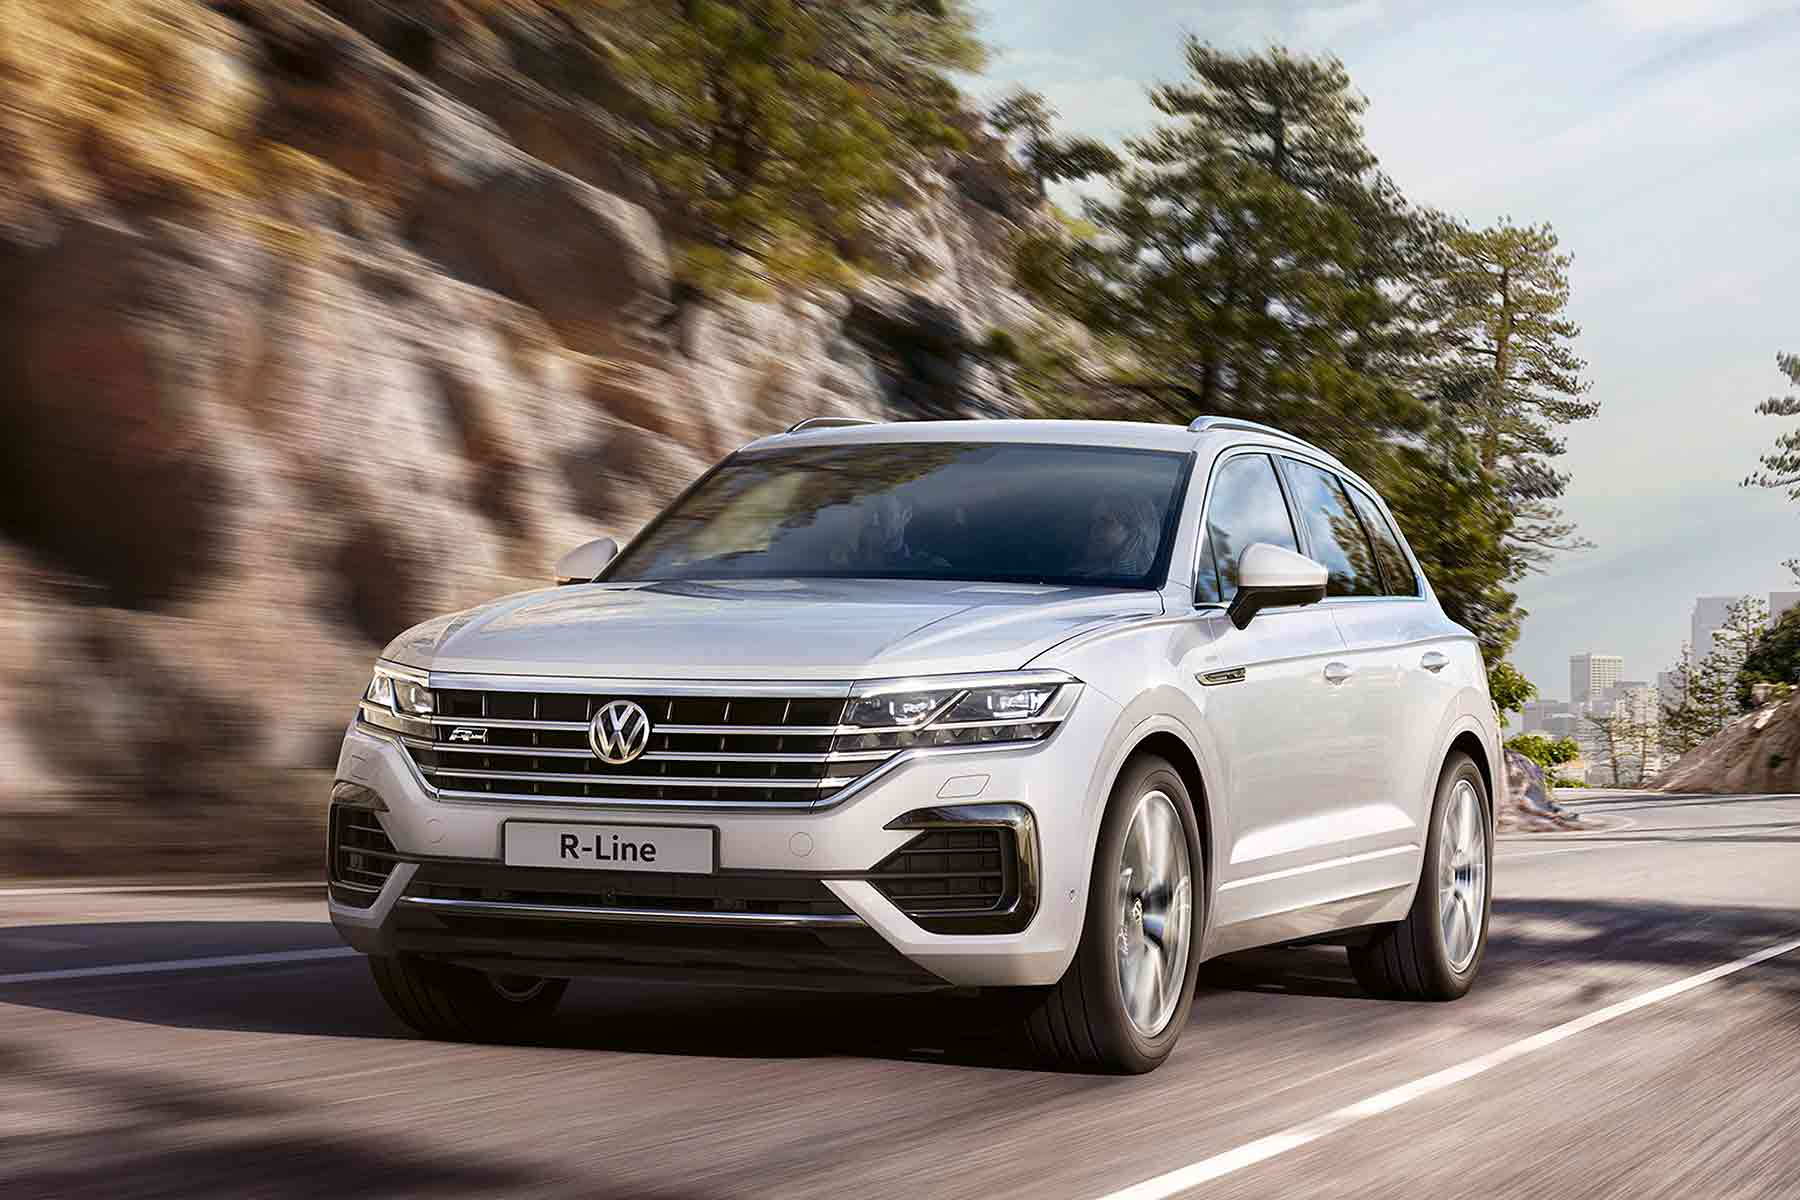 posh new volkswagen touareg suv priced from 499 a month. Black Bedroom Furniture Sets. Home Design Ideas